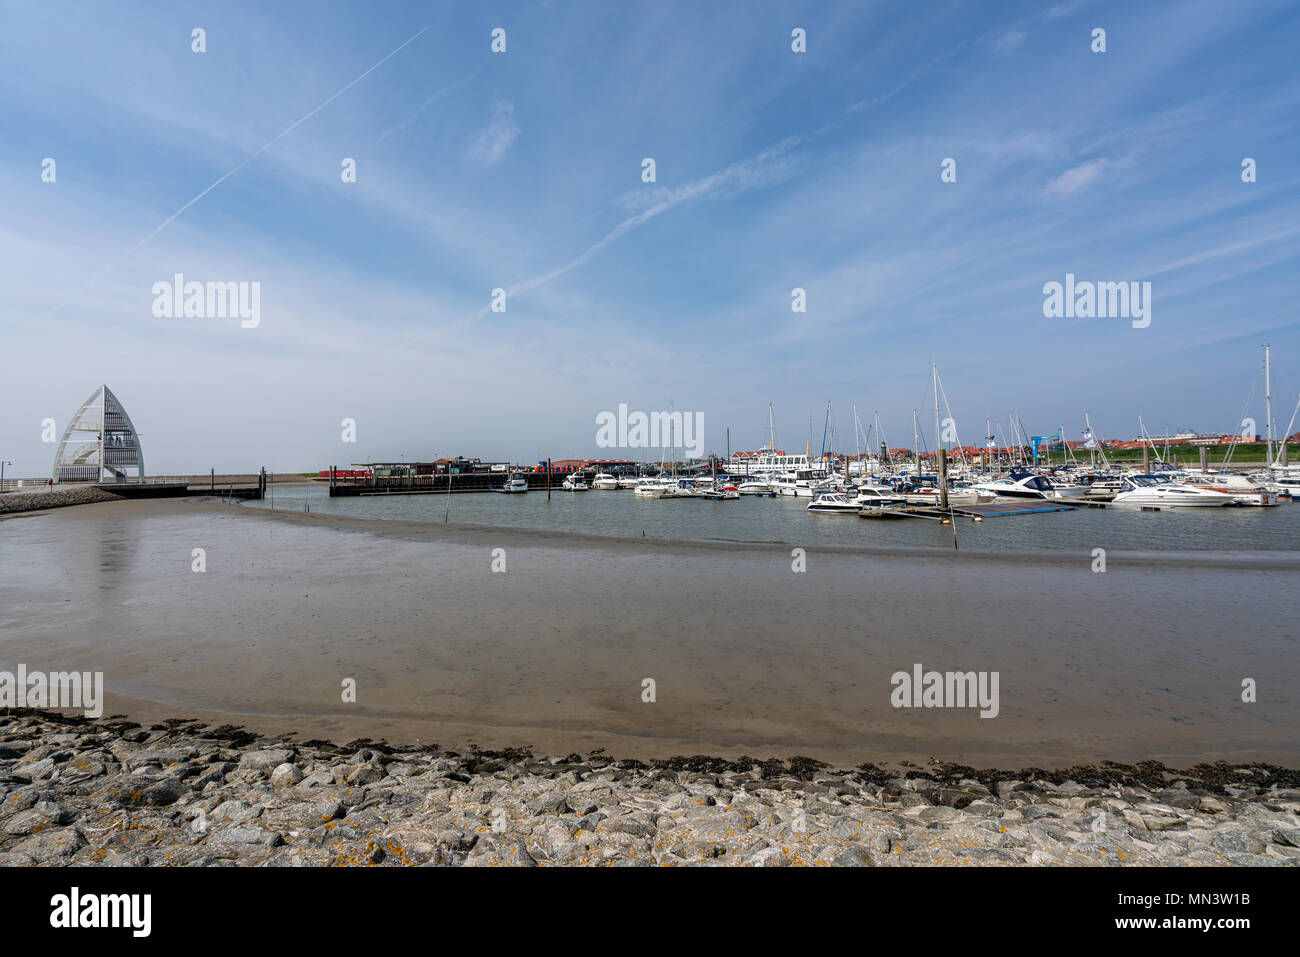 Island of juist germany stock photos island of juist for Hotels insel juist nordsee